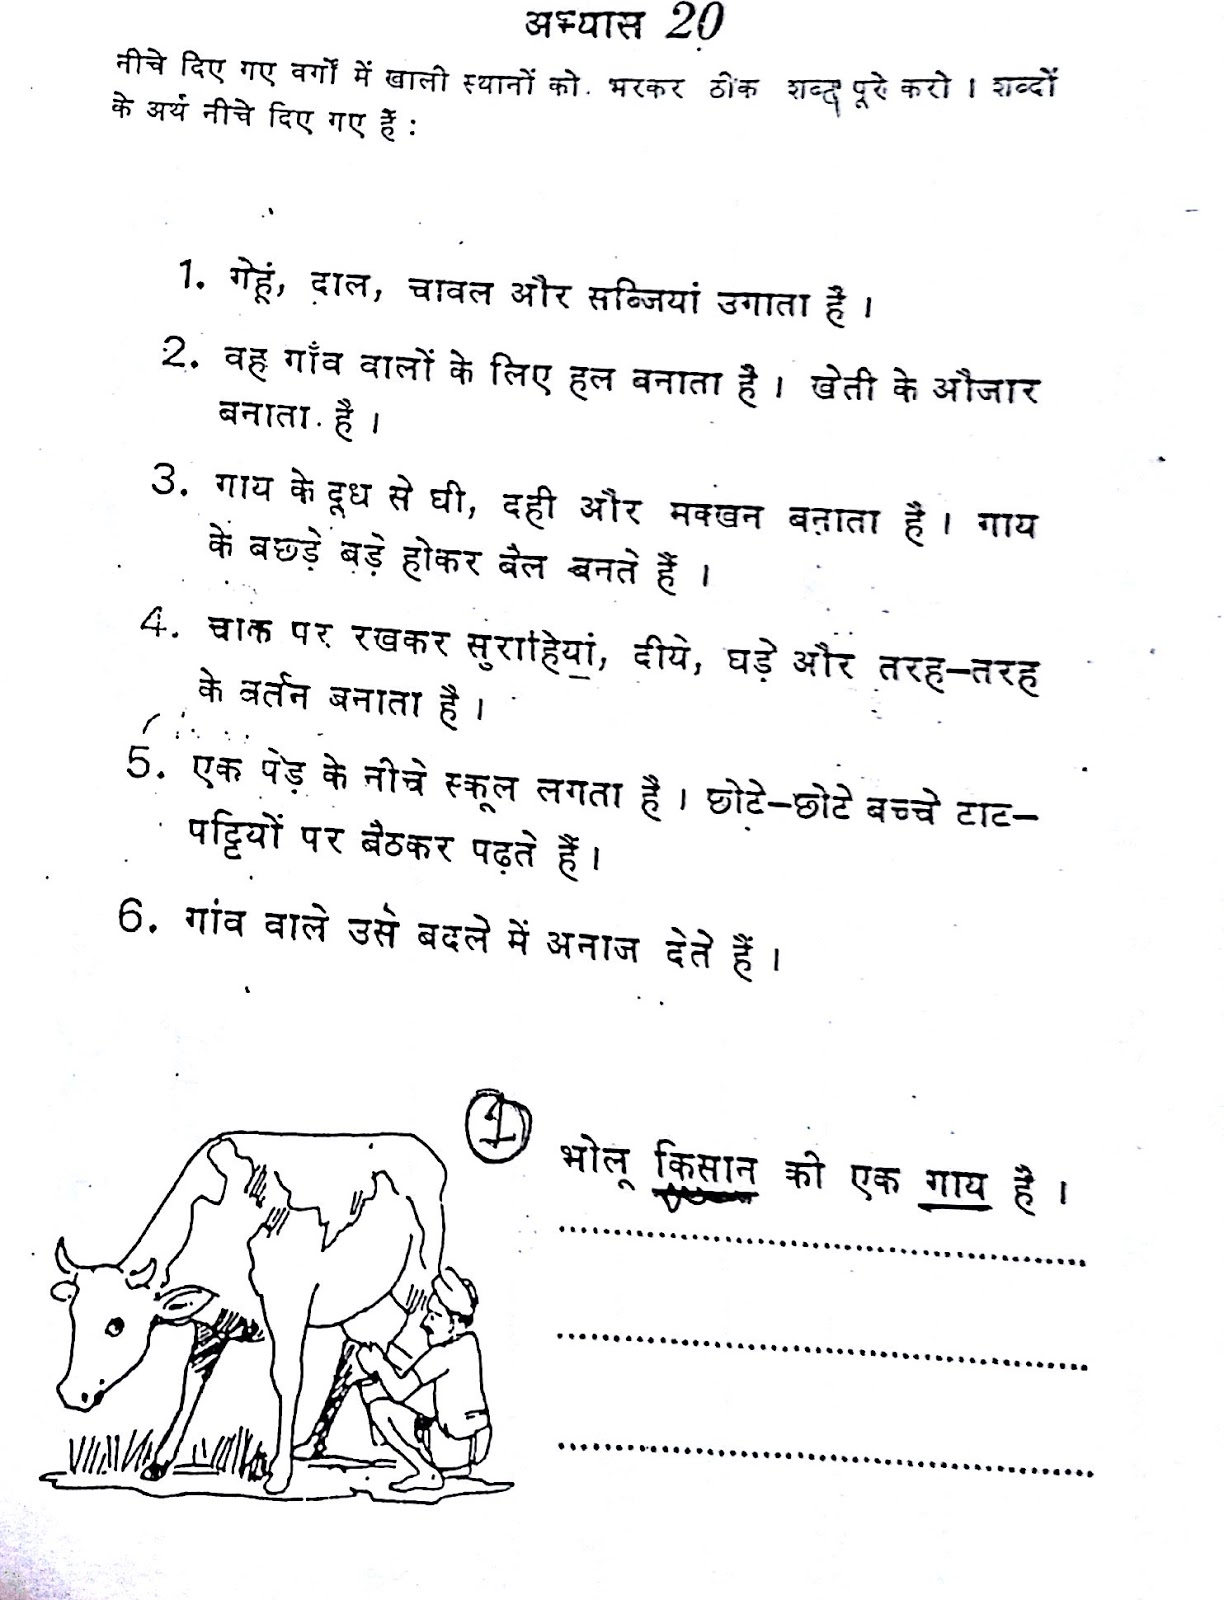 Hindi Grammar Work Sheet Collection For Classes 5 6 7 Amp 8 Occupational People Work Sheet For